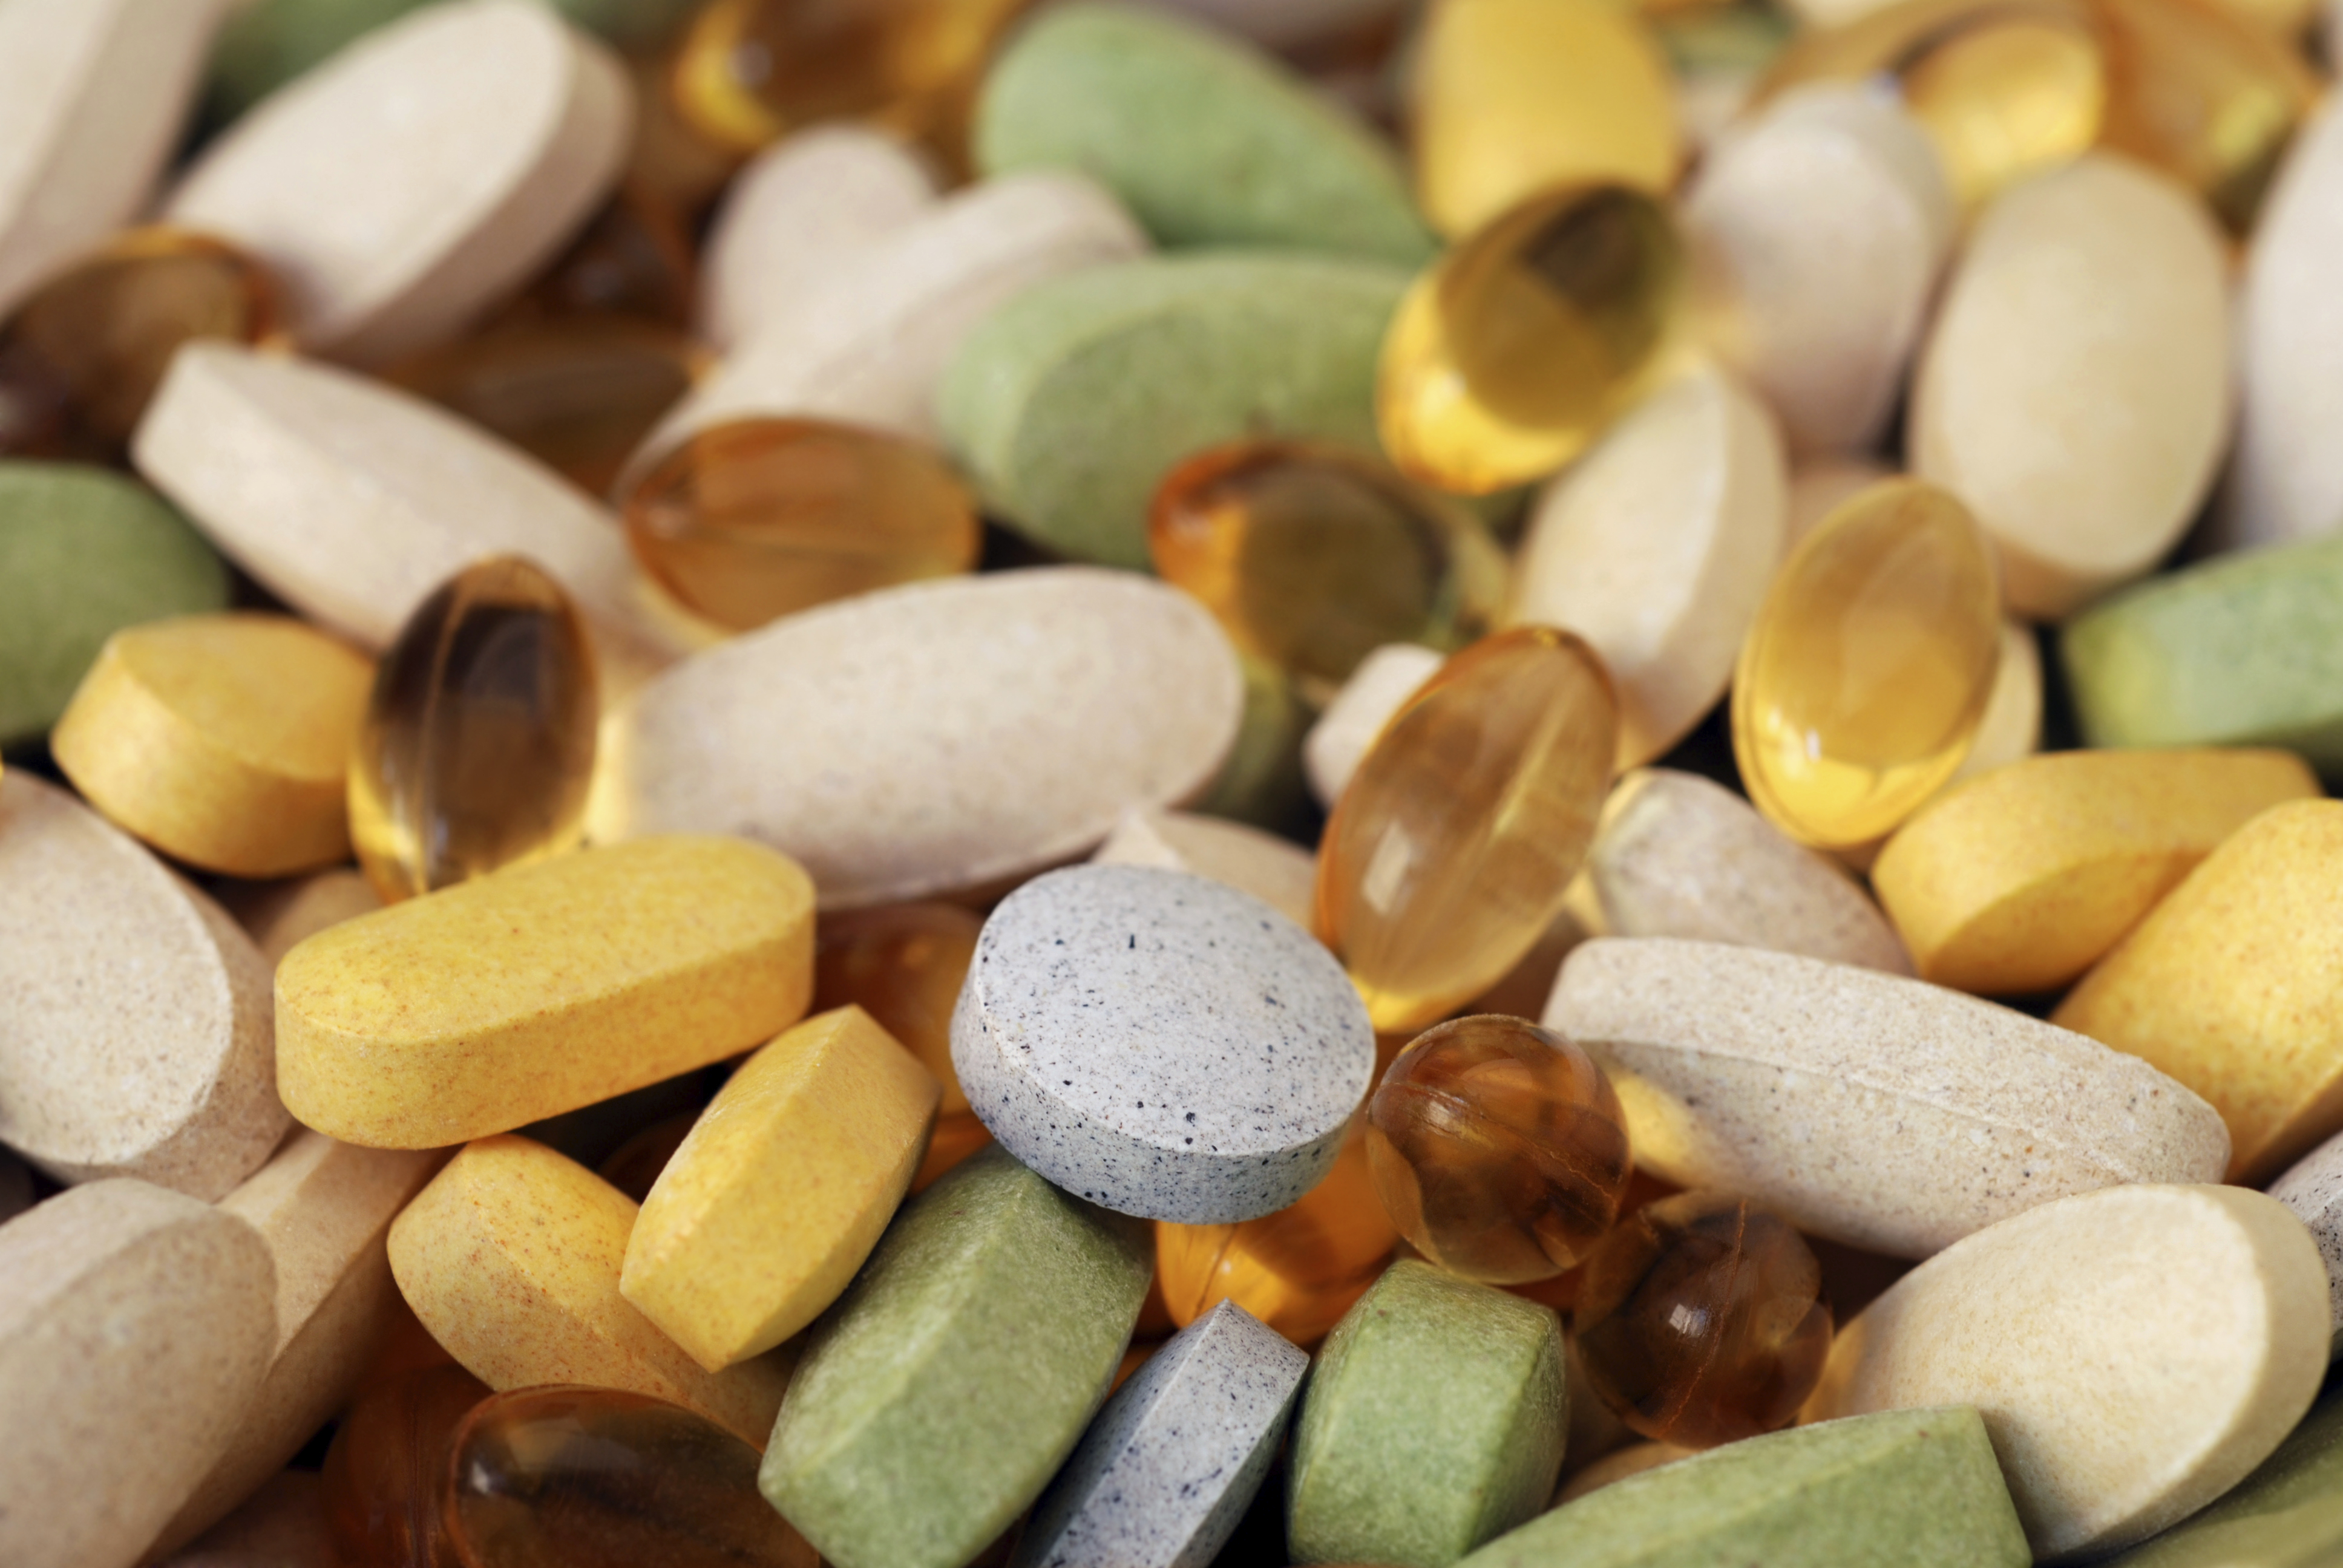 Dietary supplements linked to increased cancer risk - CBS News